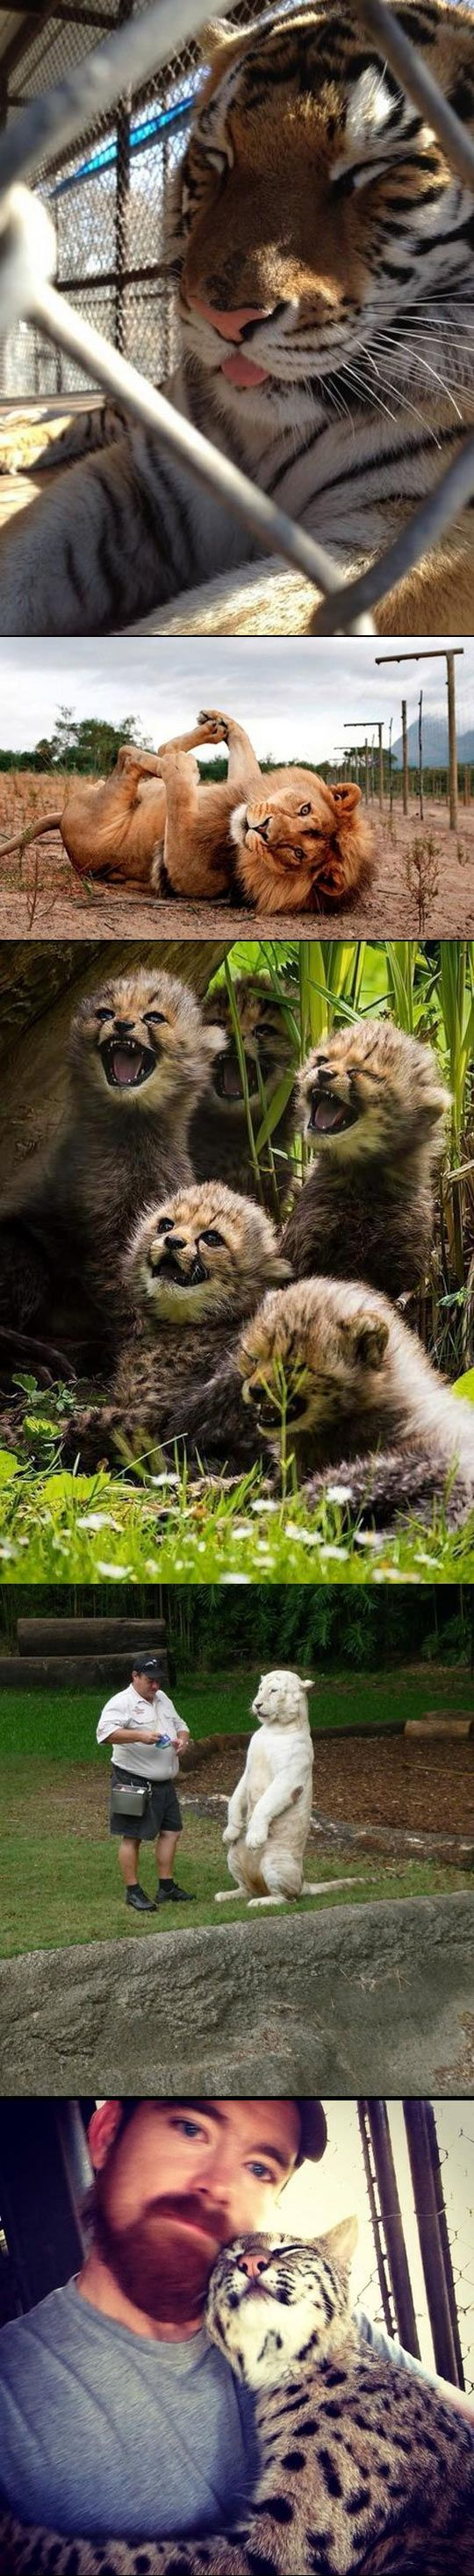 Geeky photographers show that big cats just want to have some fun.